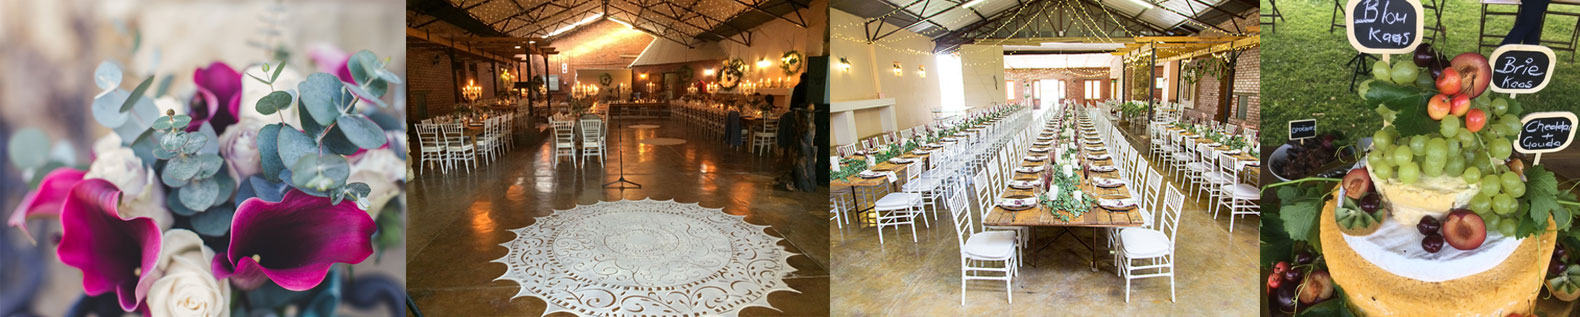 moolmanshoek-accommodation-weddings-venue-food